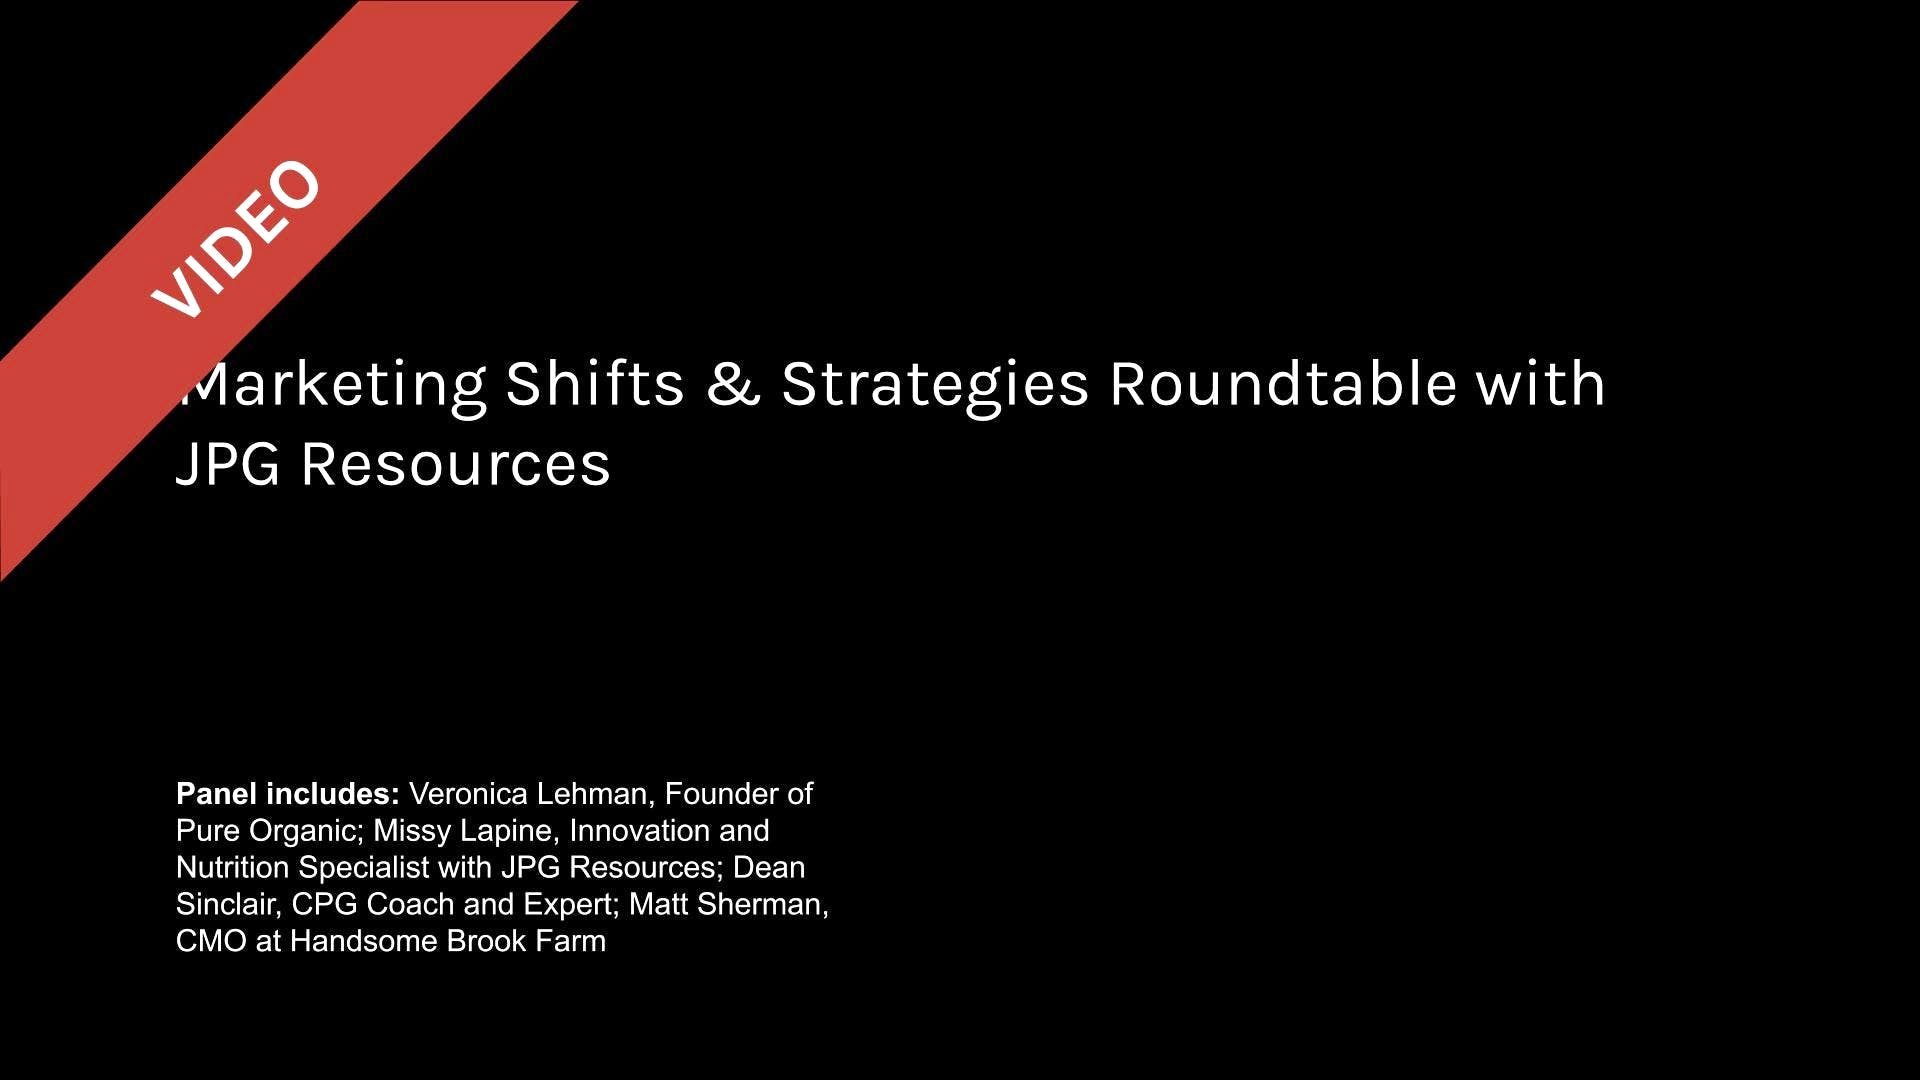 Marketing Shifts & Strategies Roundtable with JPG Resources